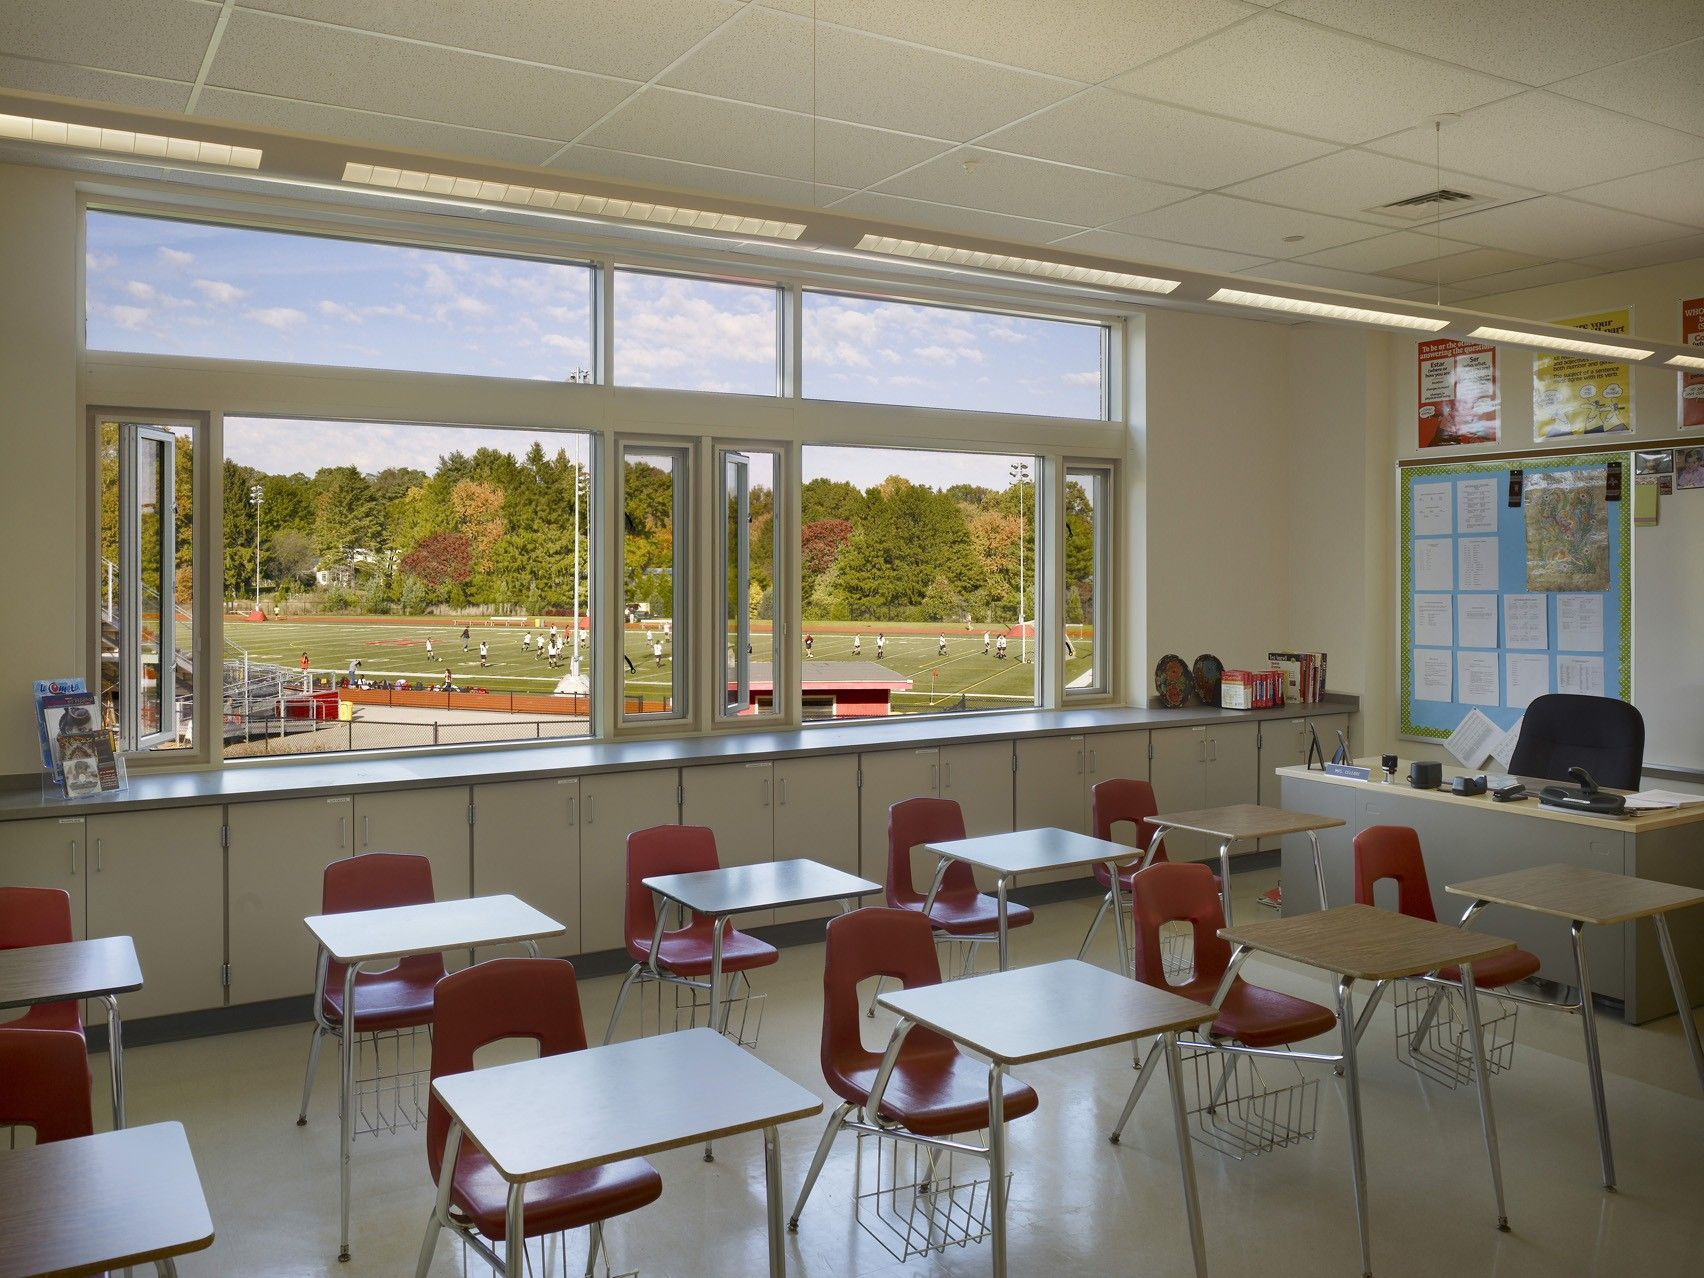 Harriton High School is one of two LEED Gold certified high schools